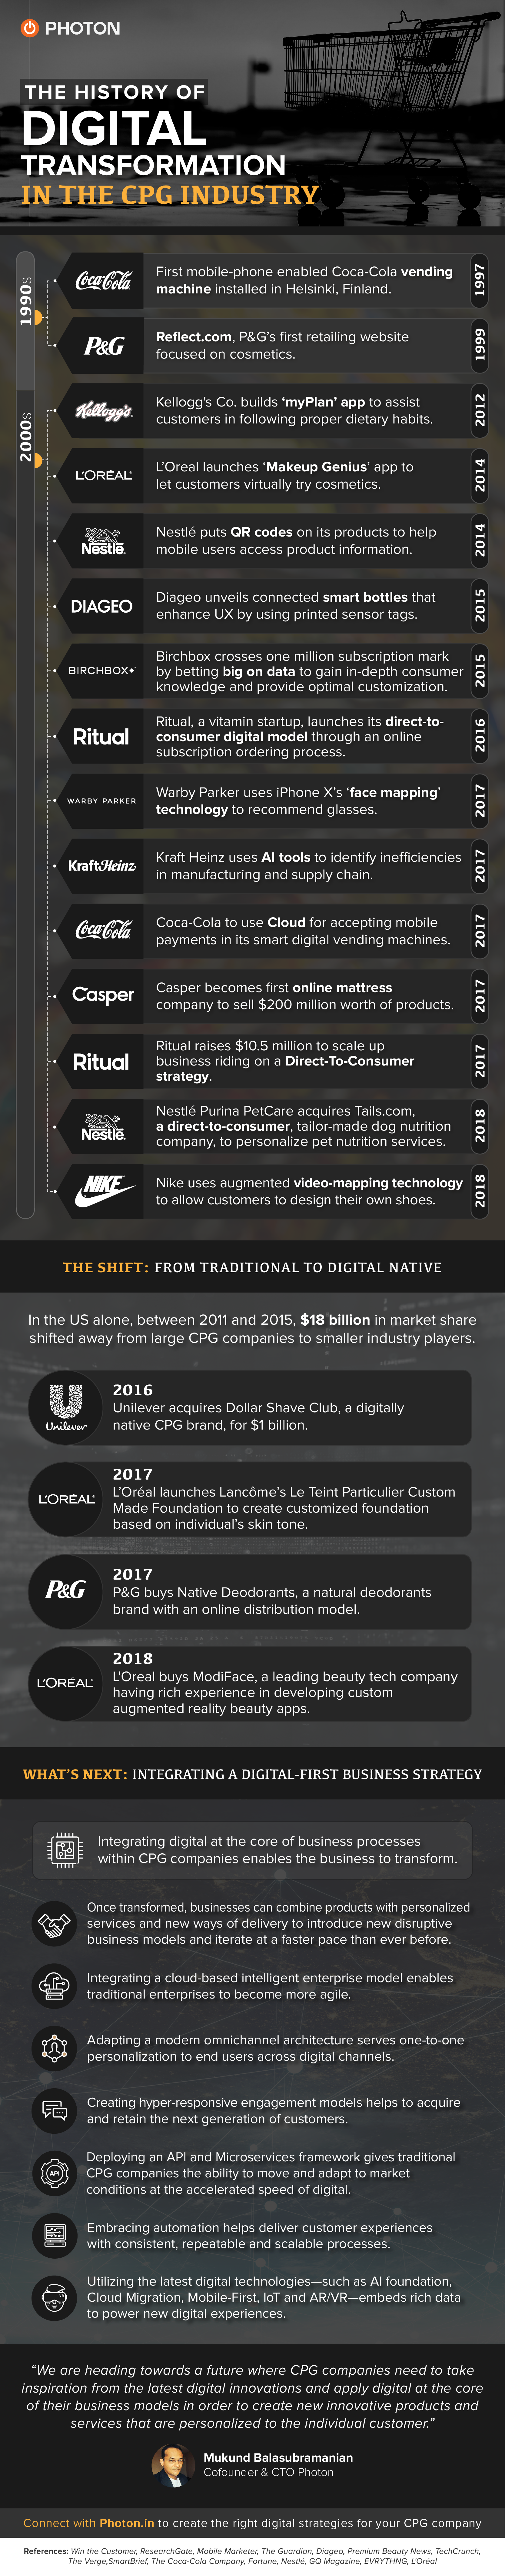 CPG History Infographic